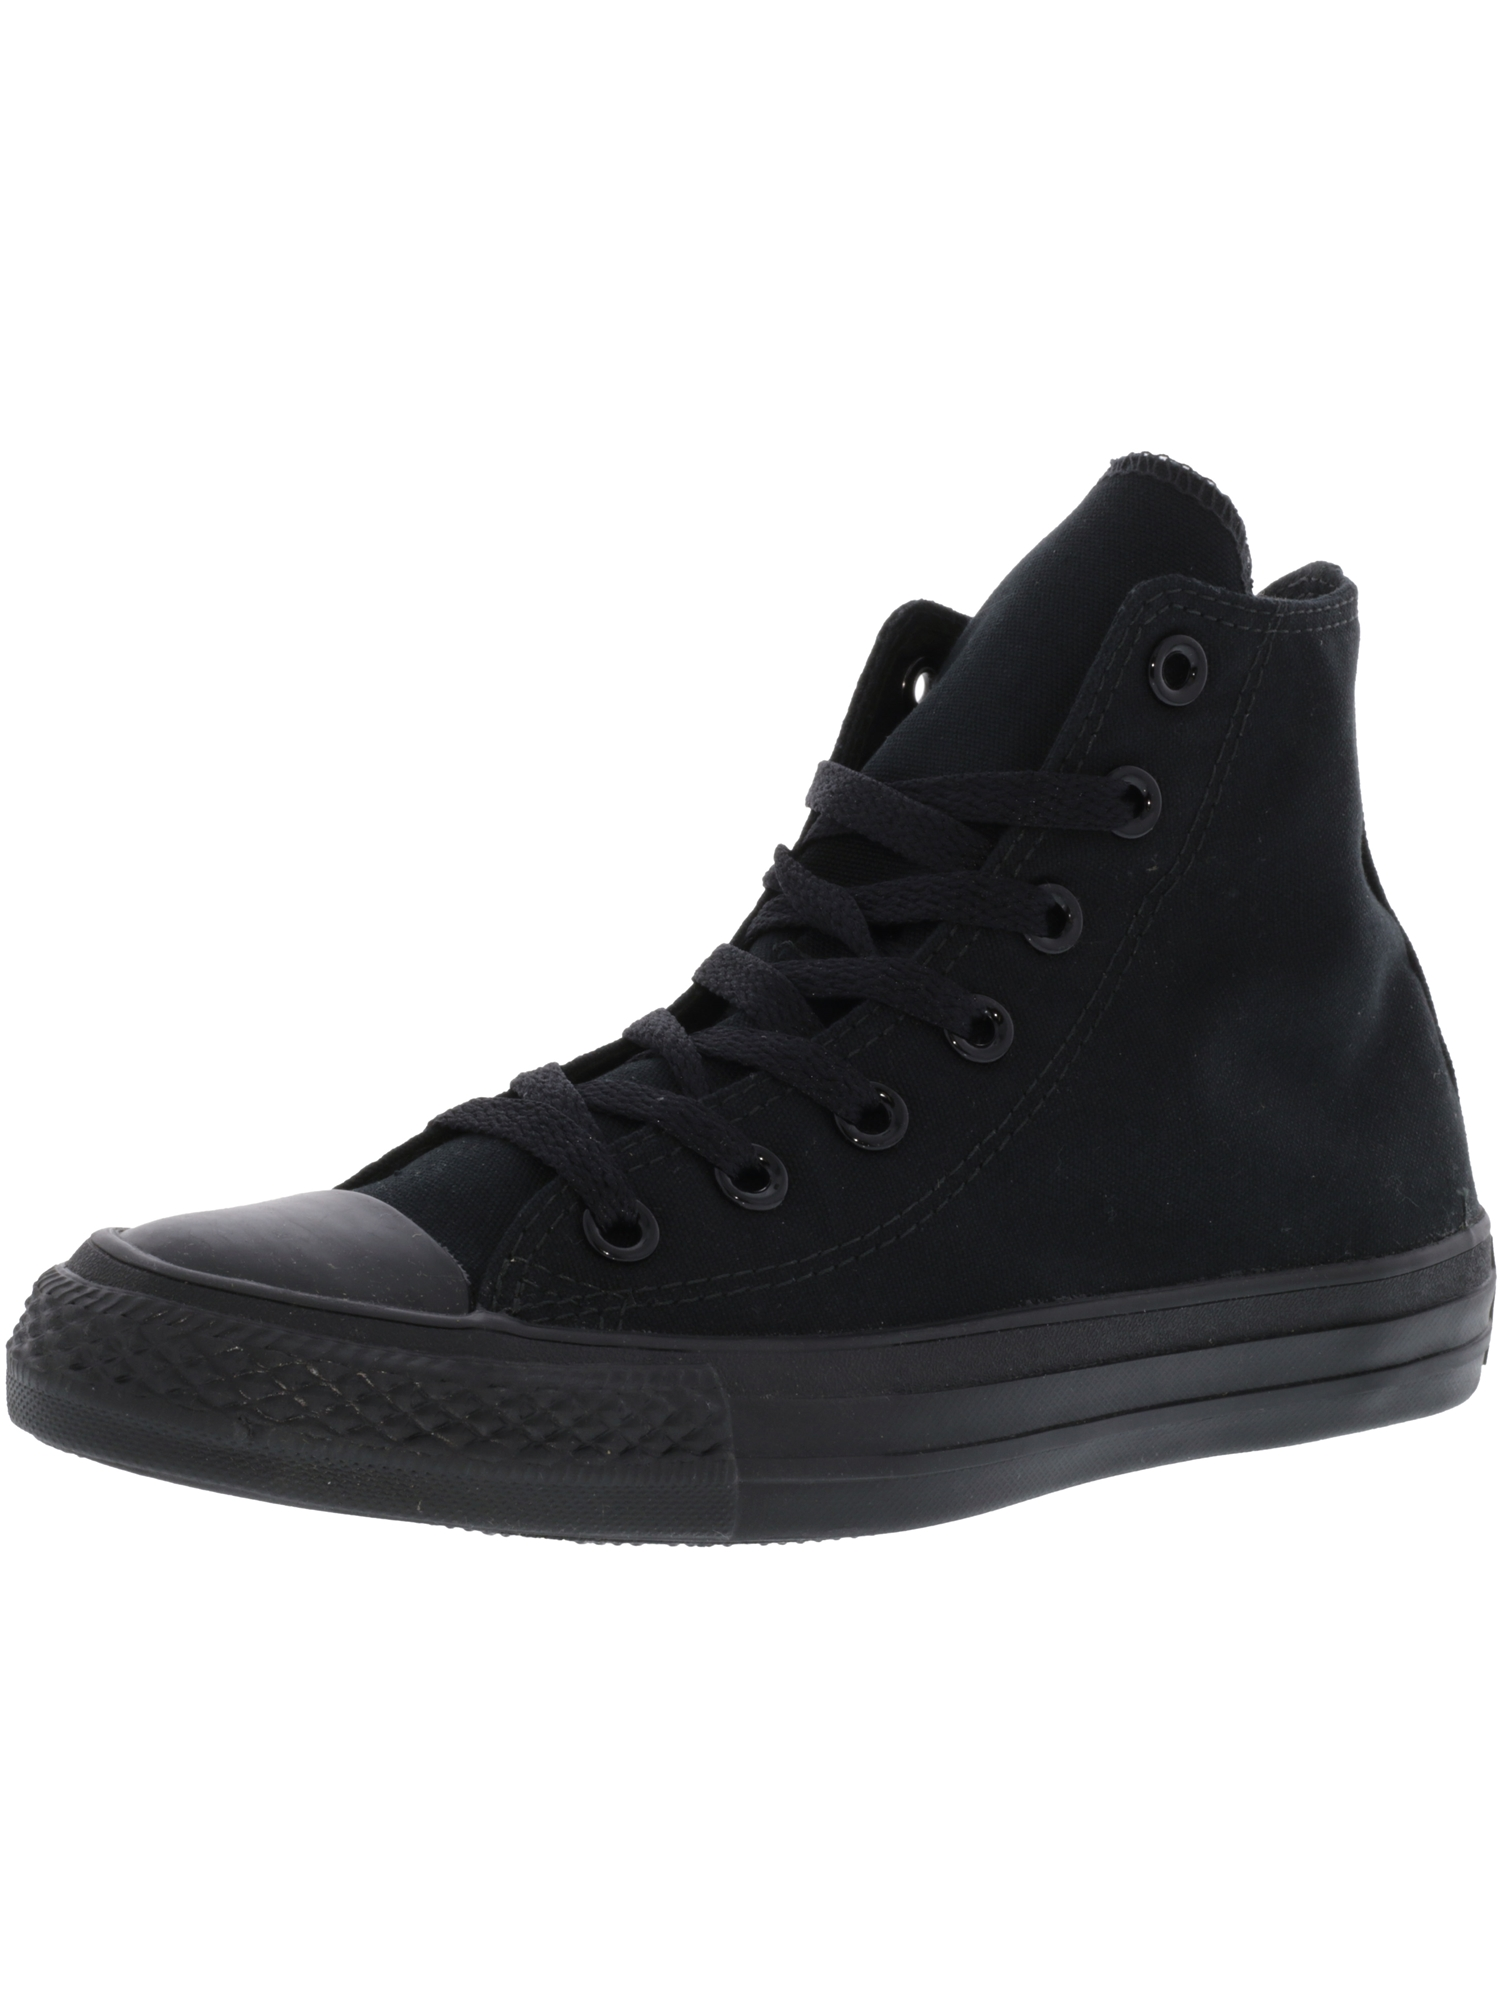 Converse Chuck Taylor All Star Core Hi Black Monochrome High-Top Fashion Sneaker 7M   5M by Converse